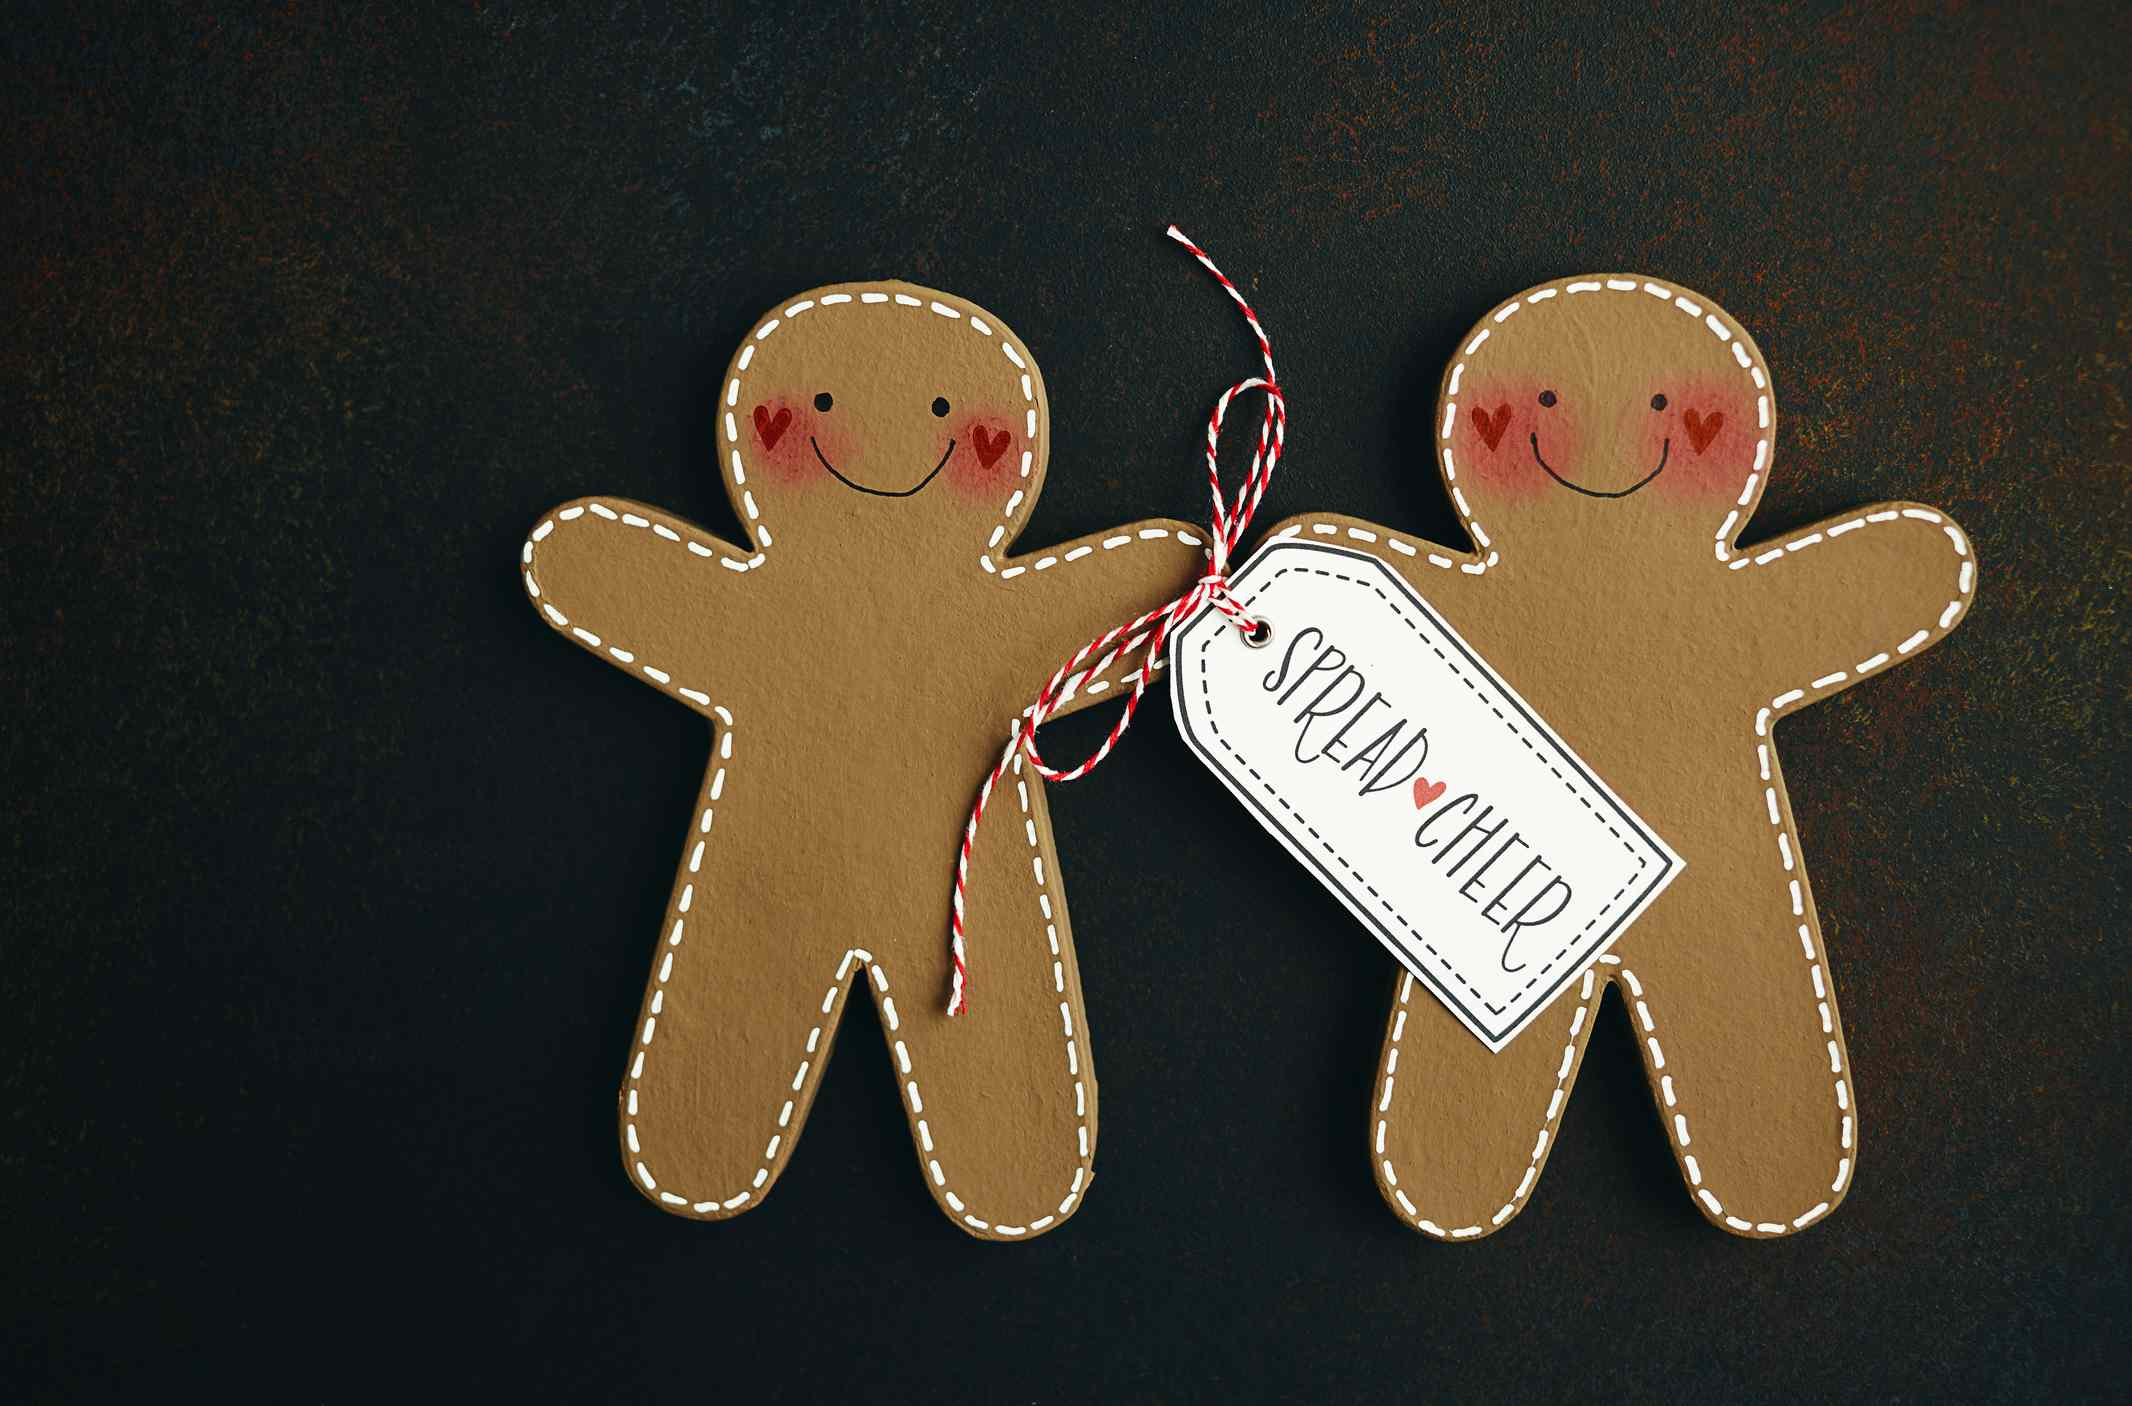 Handmade gingerbread couple with holiday message